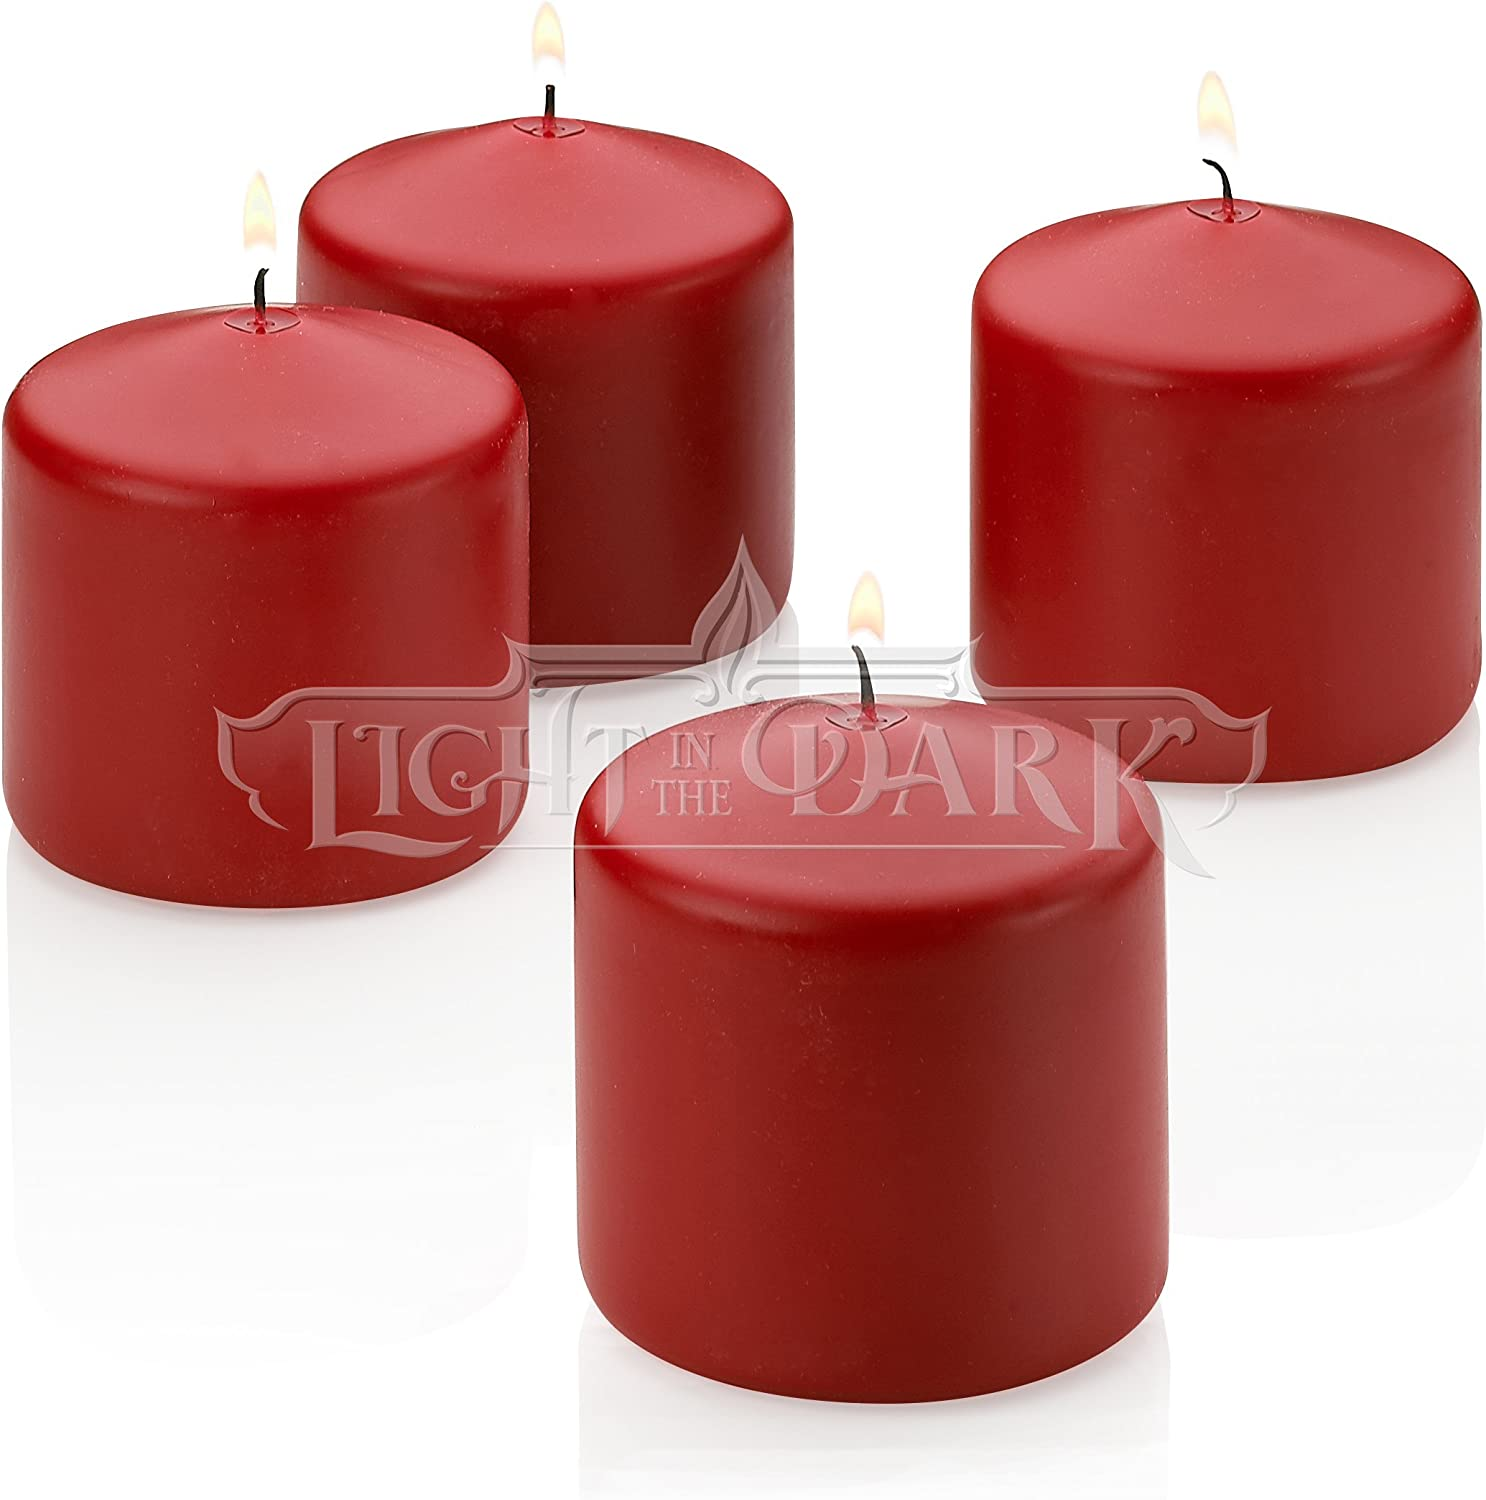 Light In The Dark 4 Red Apple Cinnamon Scented Pillar Candle 3 Inch Tall X 3 Inch Wide